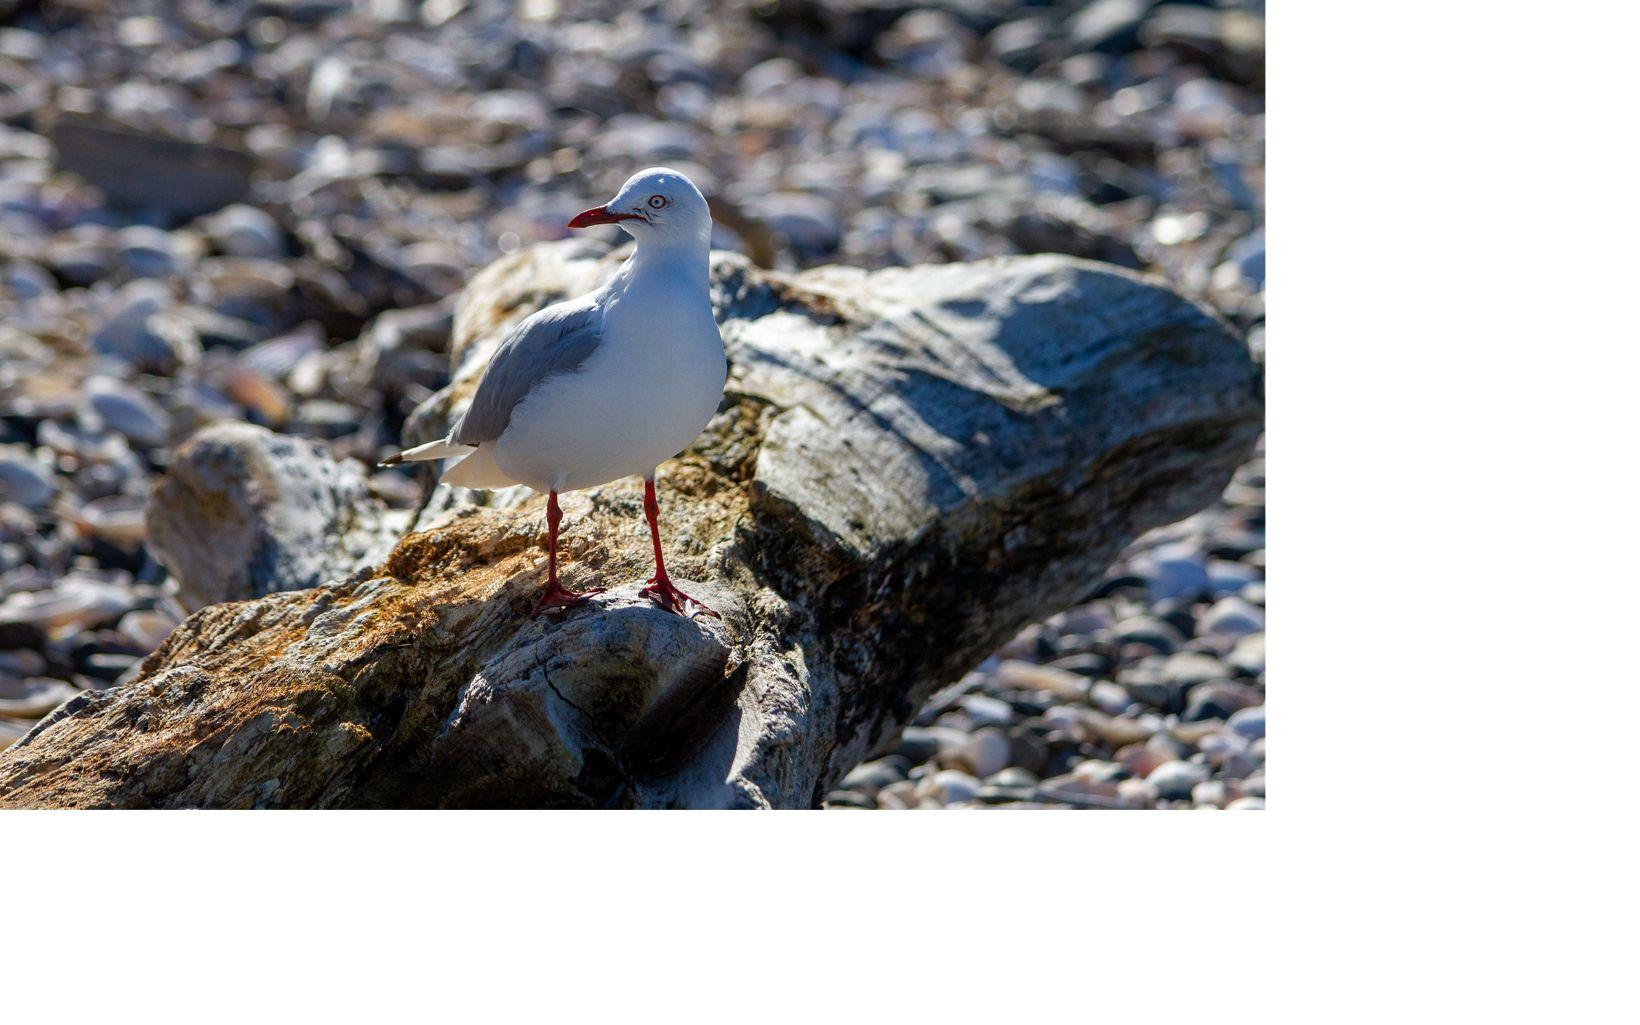 Endemic to New Zealand, this Gull, eyed us hopefully keeping track of crumbs as we finished our snacks on the beach. Red-billed Gulls breed widely on islands such as Otata.